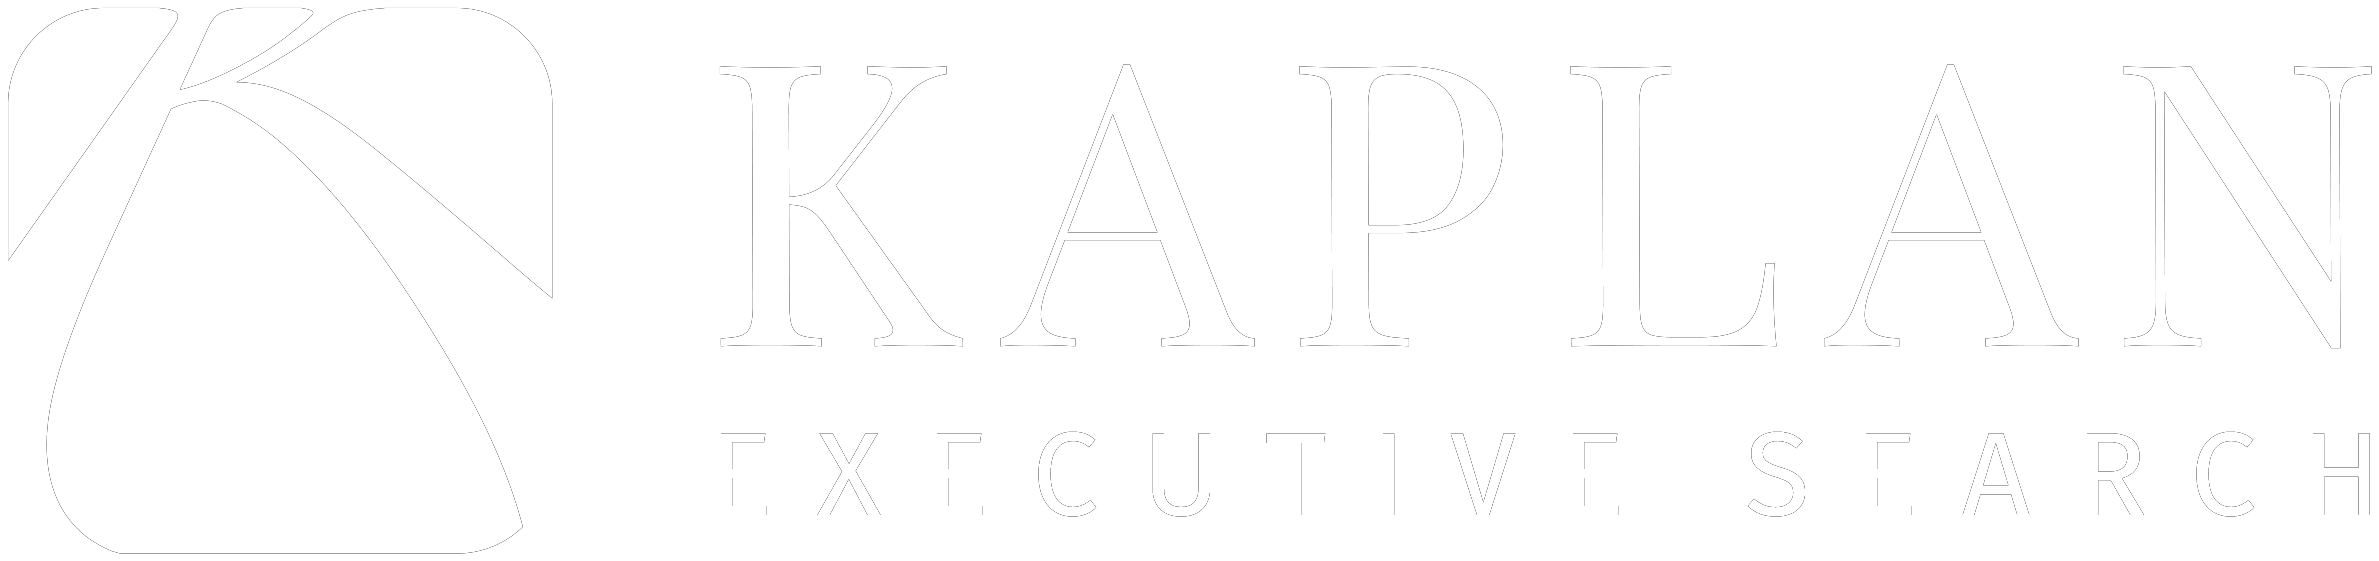 Kaplan Executive Search - Top Retained Search Firm